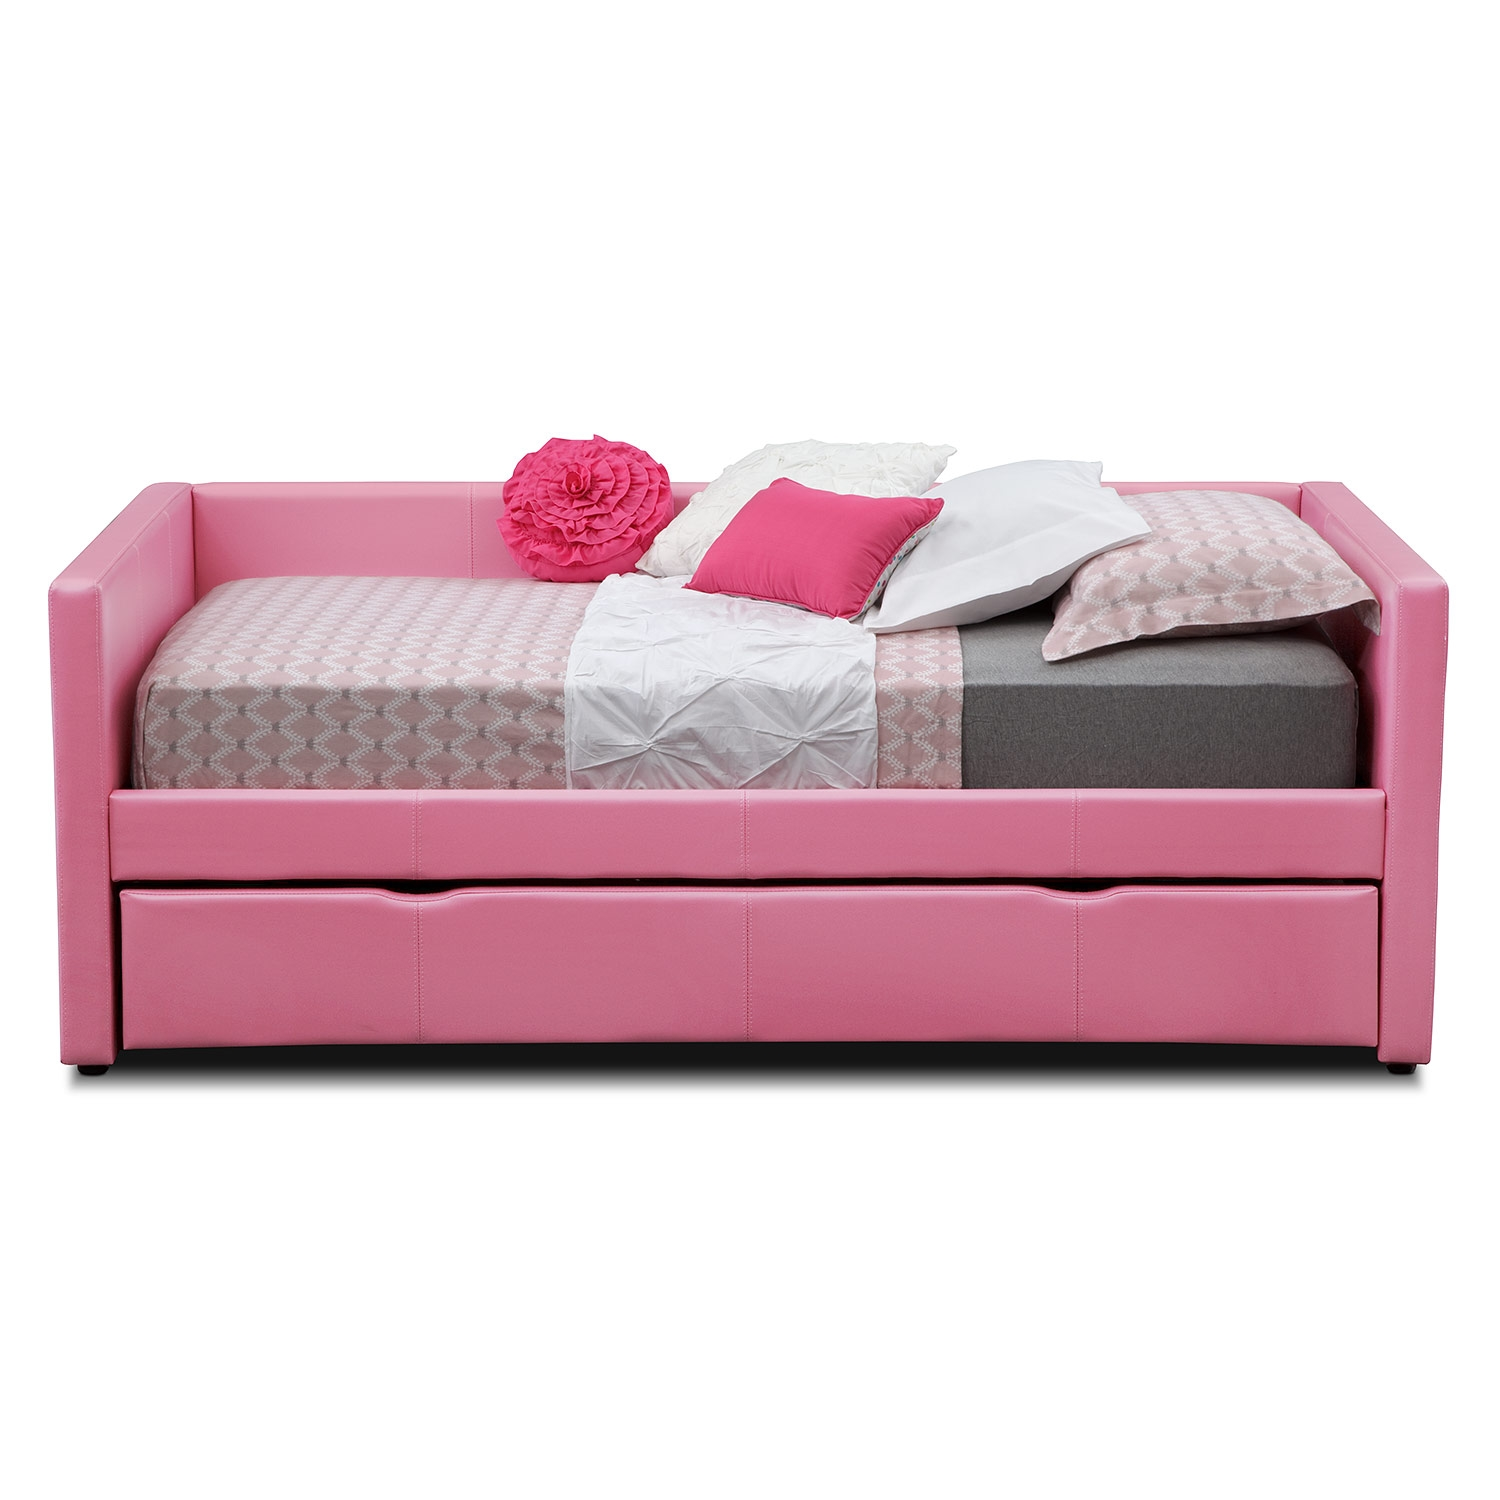 Full Daybed | Daybed Trundle | Daybed Frame Full Size